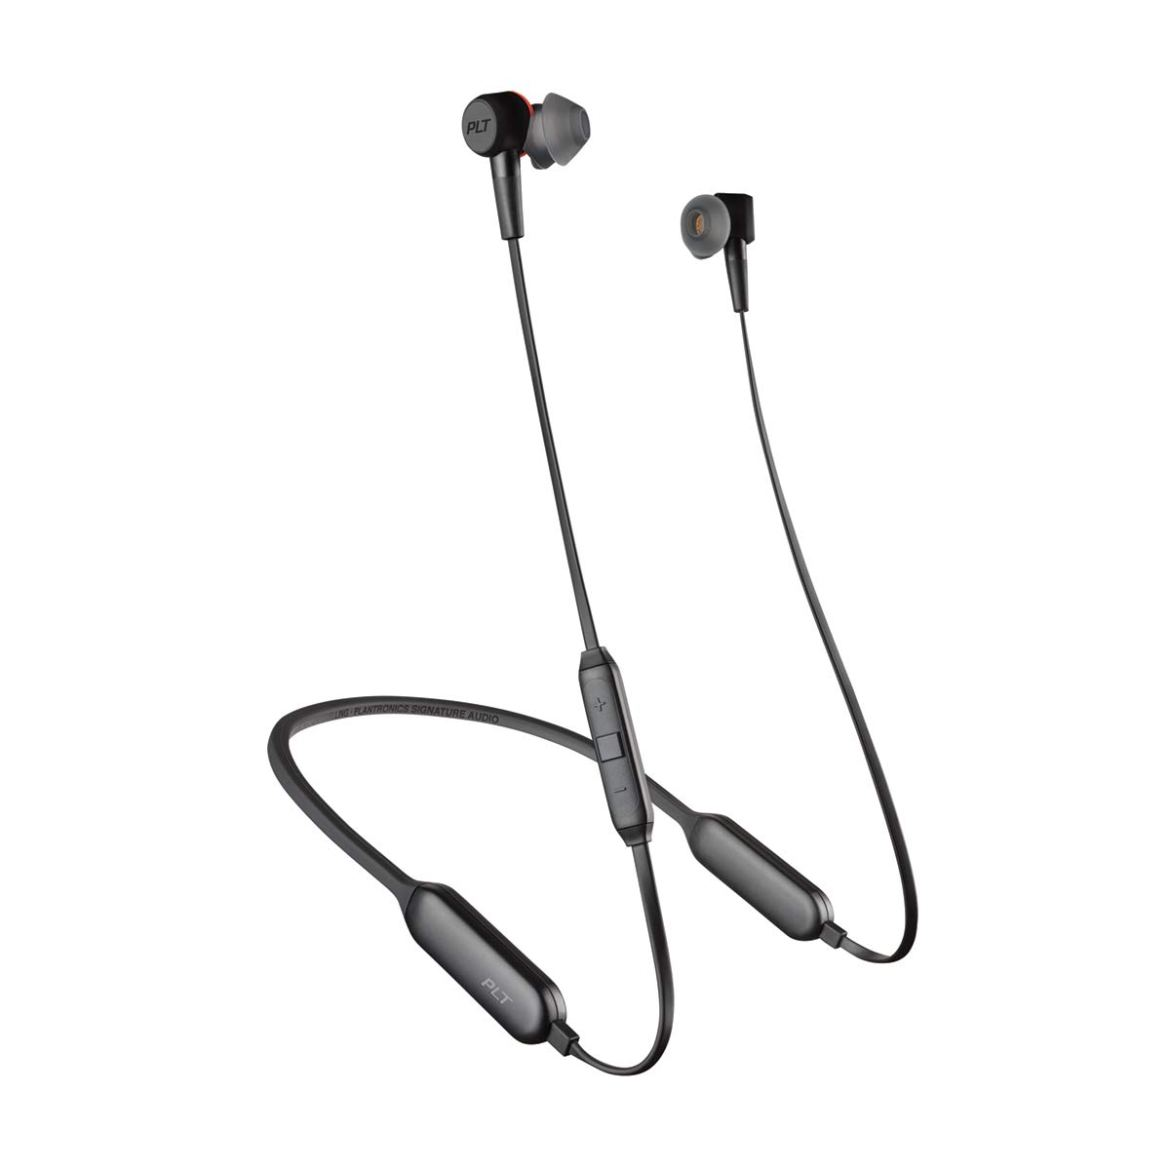 Plantronics BackBeat 410 212078-99 Headphones with Mic (Graphite)